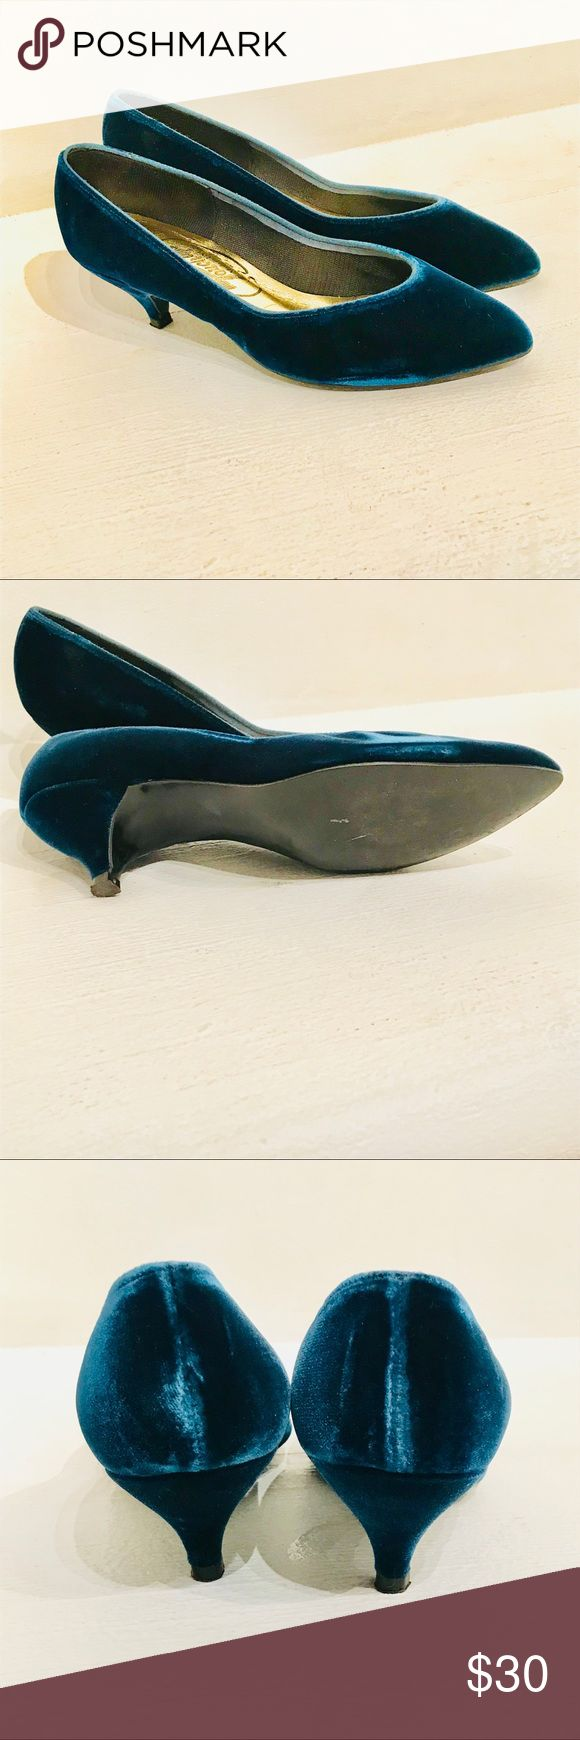 """Vintage 80s Peacock Blue Velvet Kitten Heels 6.5/7 These insanely gorgeous velvet pumps are a stunning peacock blue, barely worn, with a ladylike pointed toe, 1.5"""" high heel, and  a comfy gold padded insole.  The color is difficult to photograph, but these will definitely put a little posh in your step.    Ladies size 7 but they run a little small. If you are a small 7 or a bigger 6.5 they should fit.   Fabulous!! Vintage Shoes Heels"""